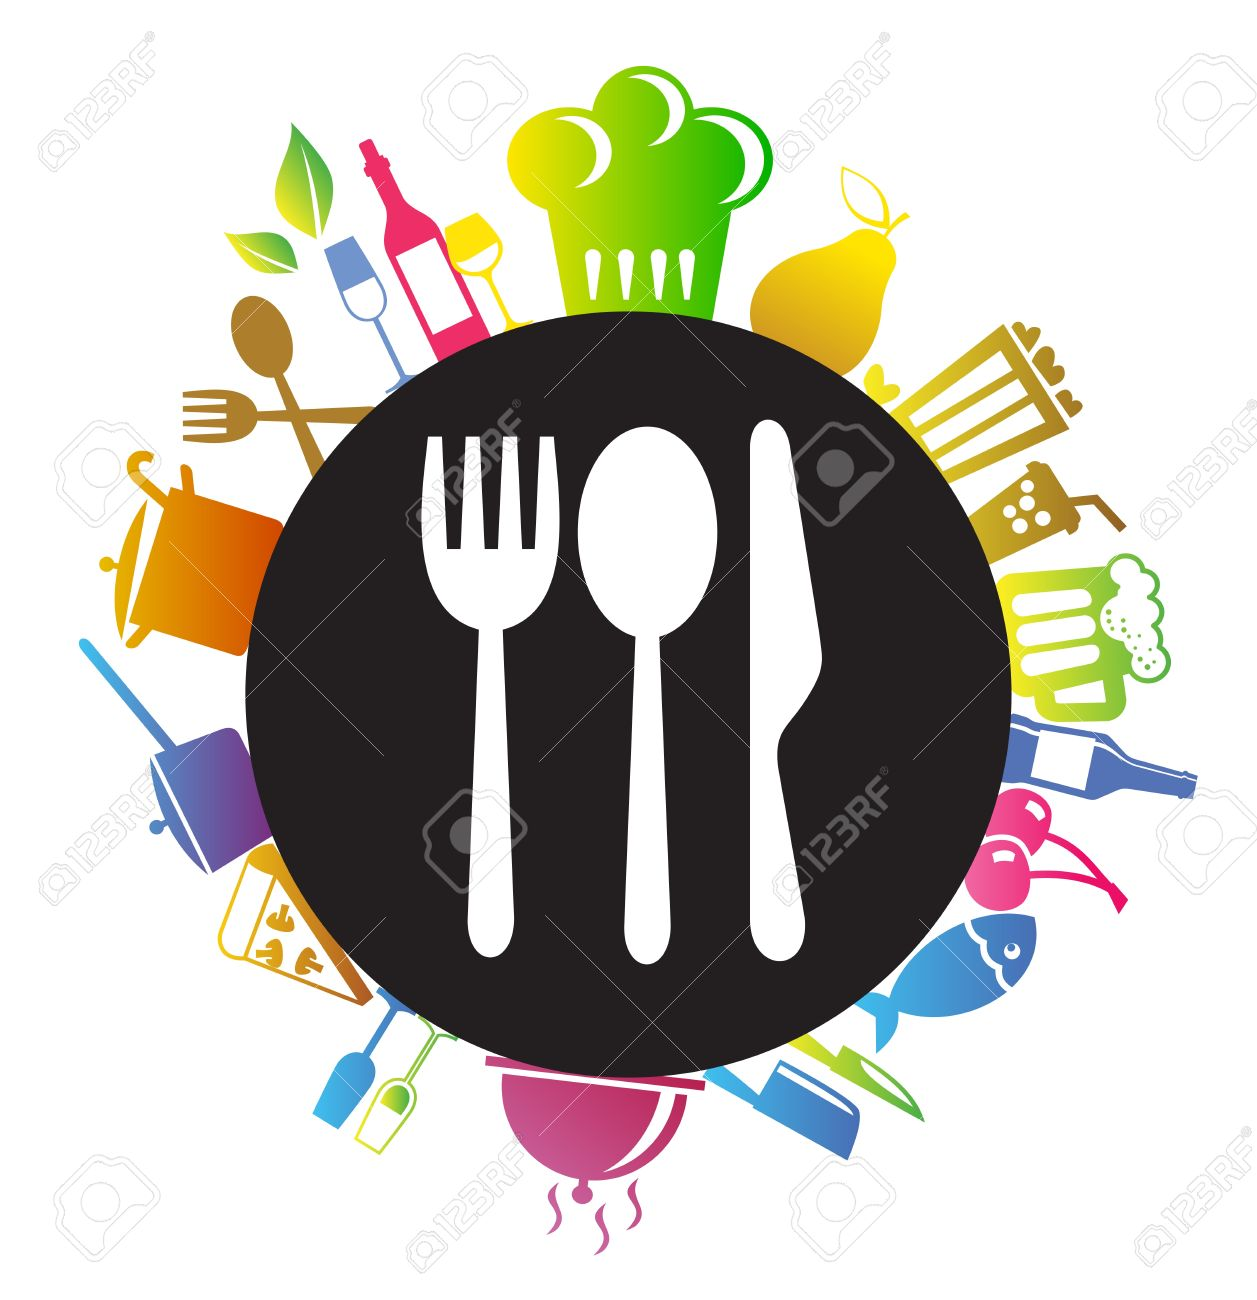 24,275 Gastronomy Stock Vector Illustration And Royalty Free.